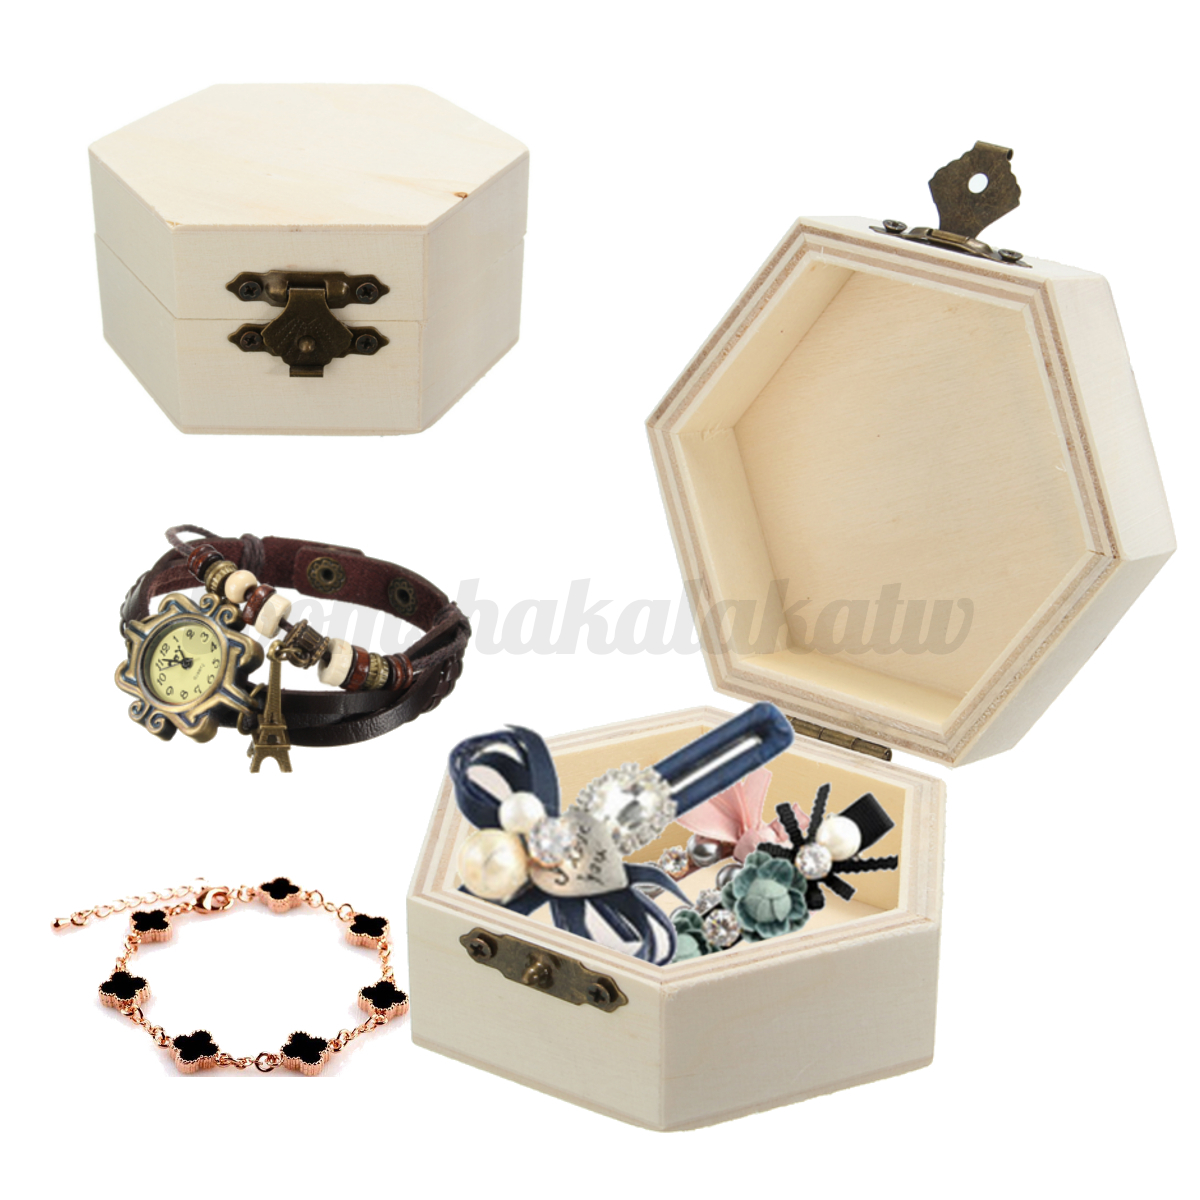 Diy unfinished unpainted plain wooden wood jewelry box for Ring case